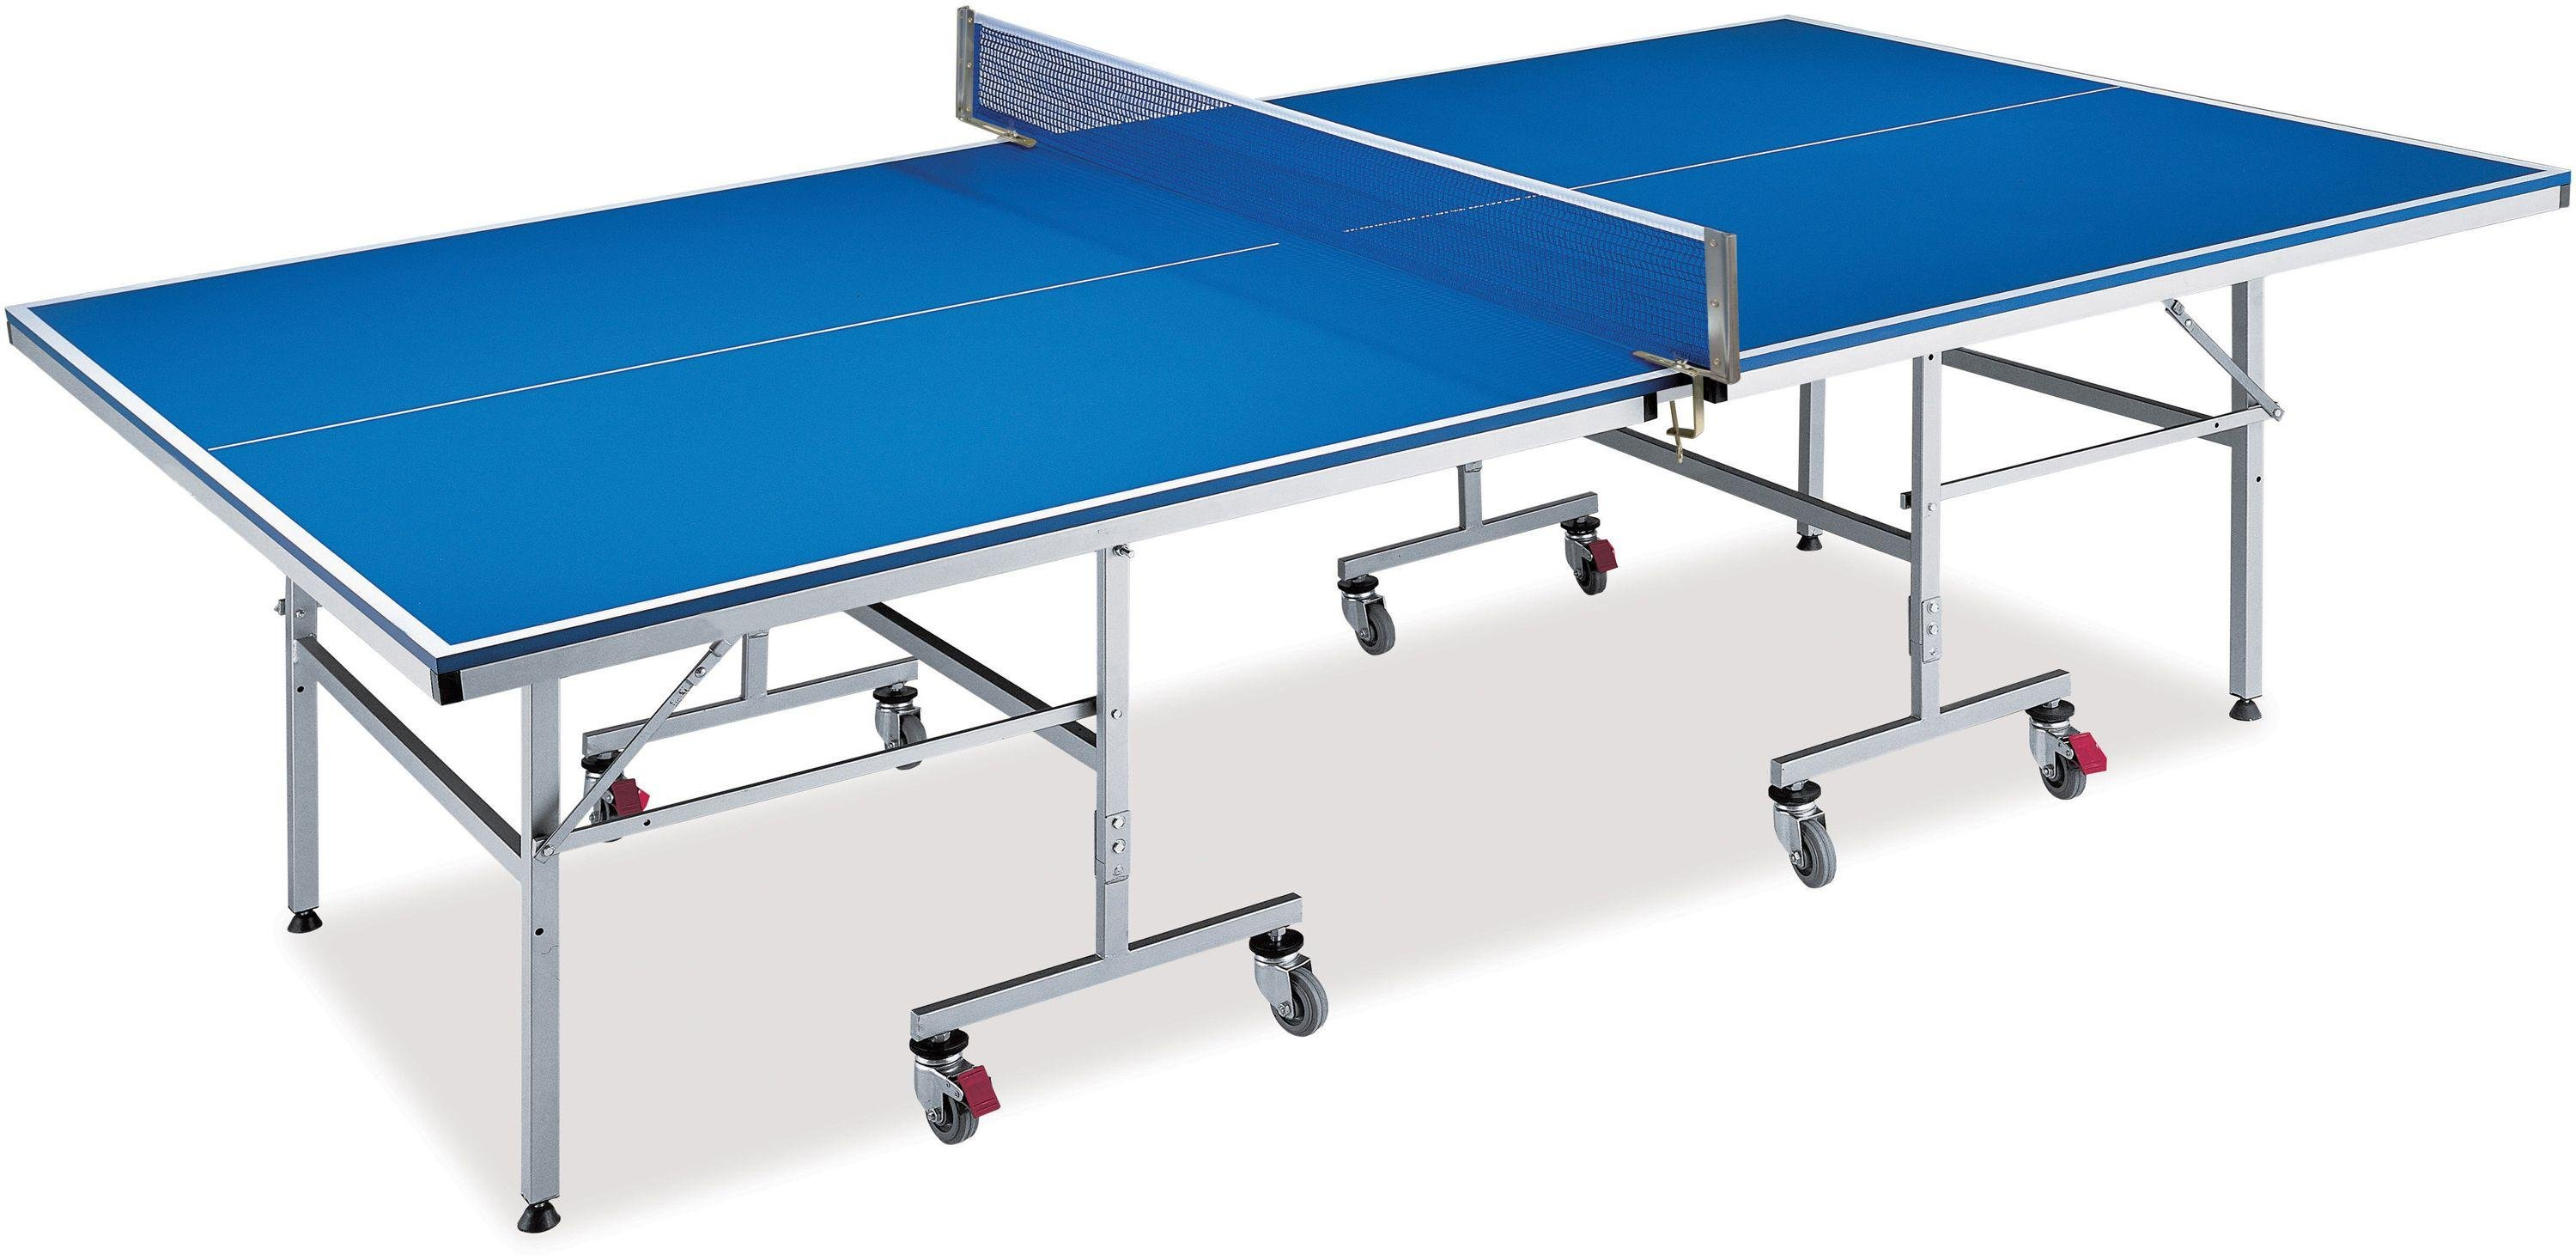 Mightymast Full Size Table Tennis Table Conversion Kit